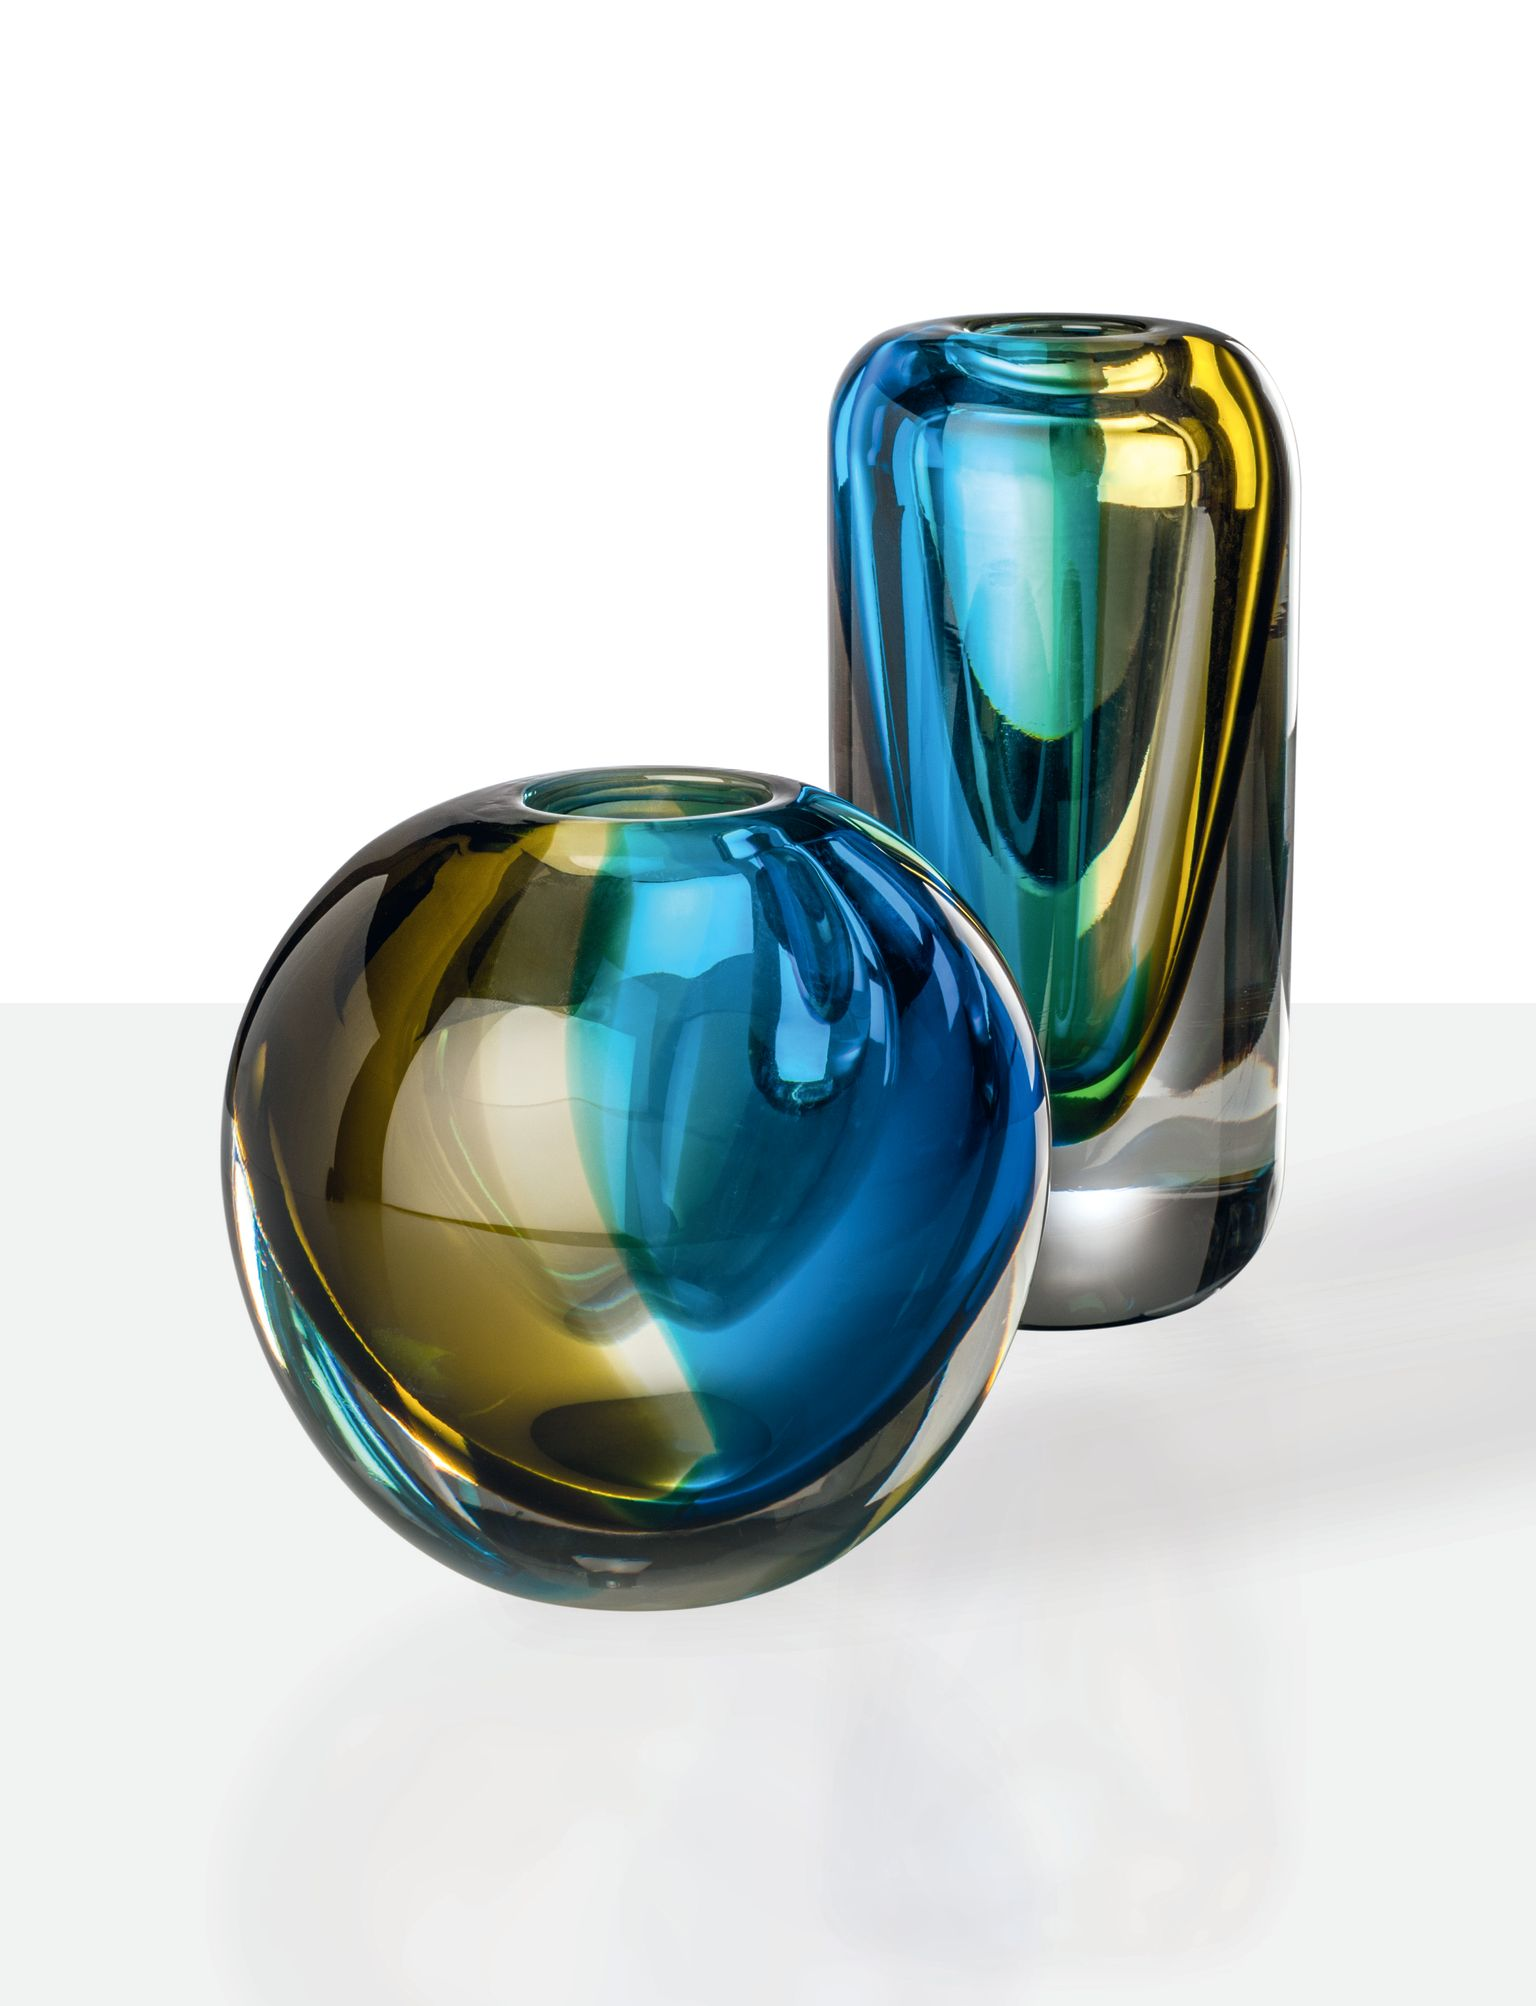 """Venezia Vase - Transparent Crystal meets Aquamarine and Bamboo. Its tones speak of the Venetian lagoon and its marshy origins: fragments of Venice on glass. A celebration made all the more special by the use of the """"Sommerso"""" technique on blown glass. 